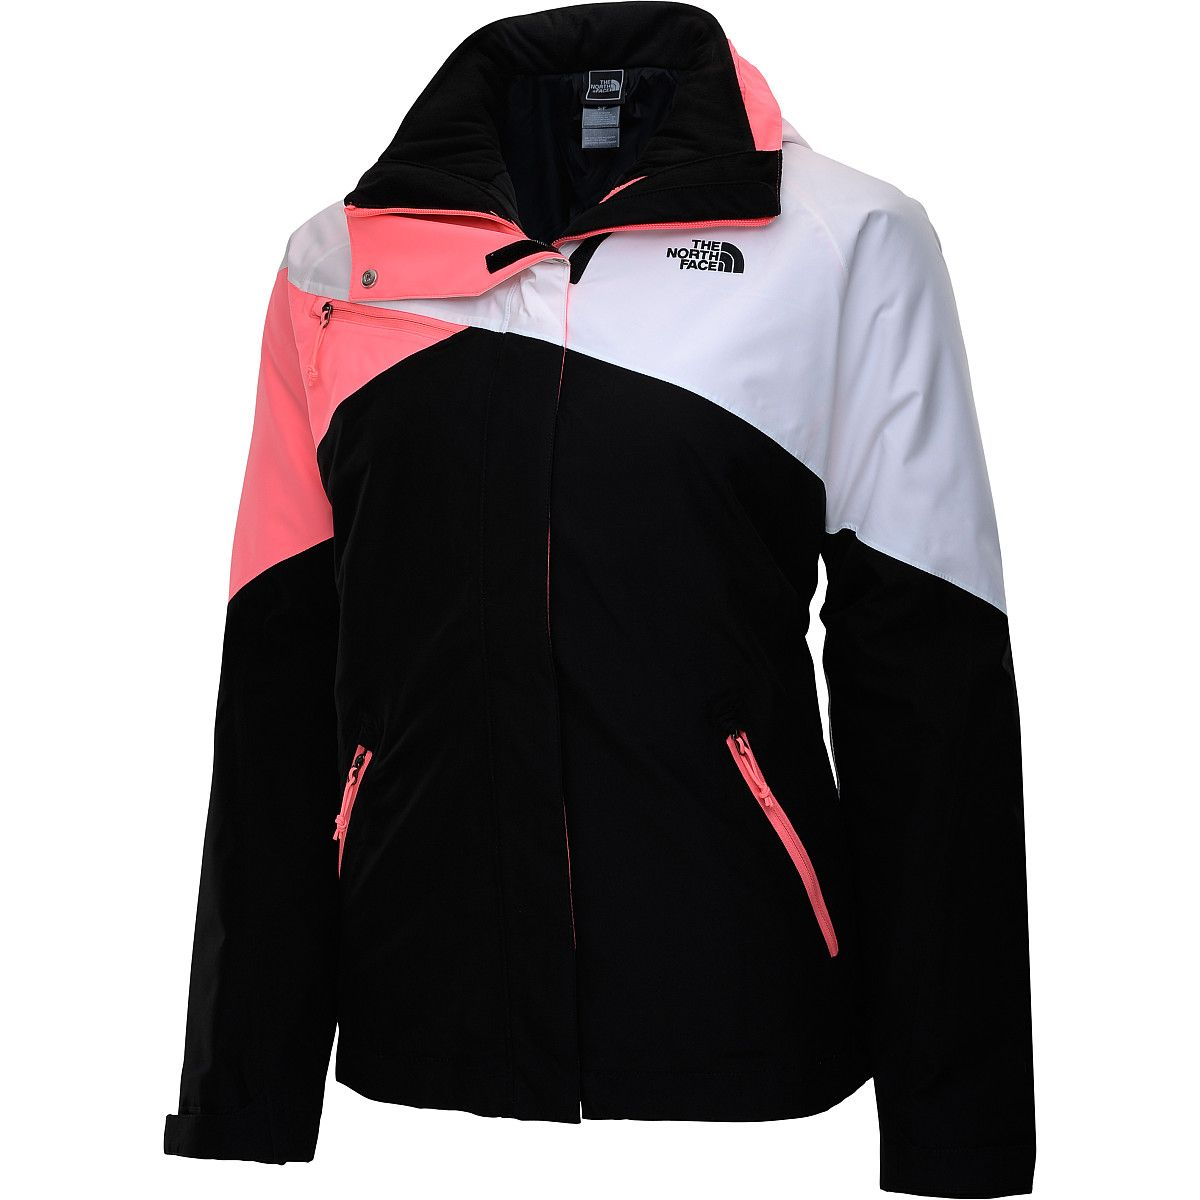 4d4335e9a95c THE NORTH FACE Women s Cinnabar Triclimate Jacket - SportsAuthority ...